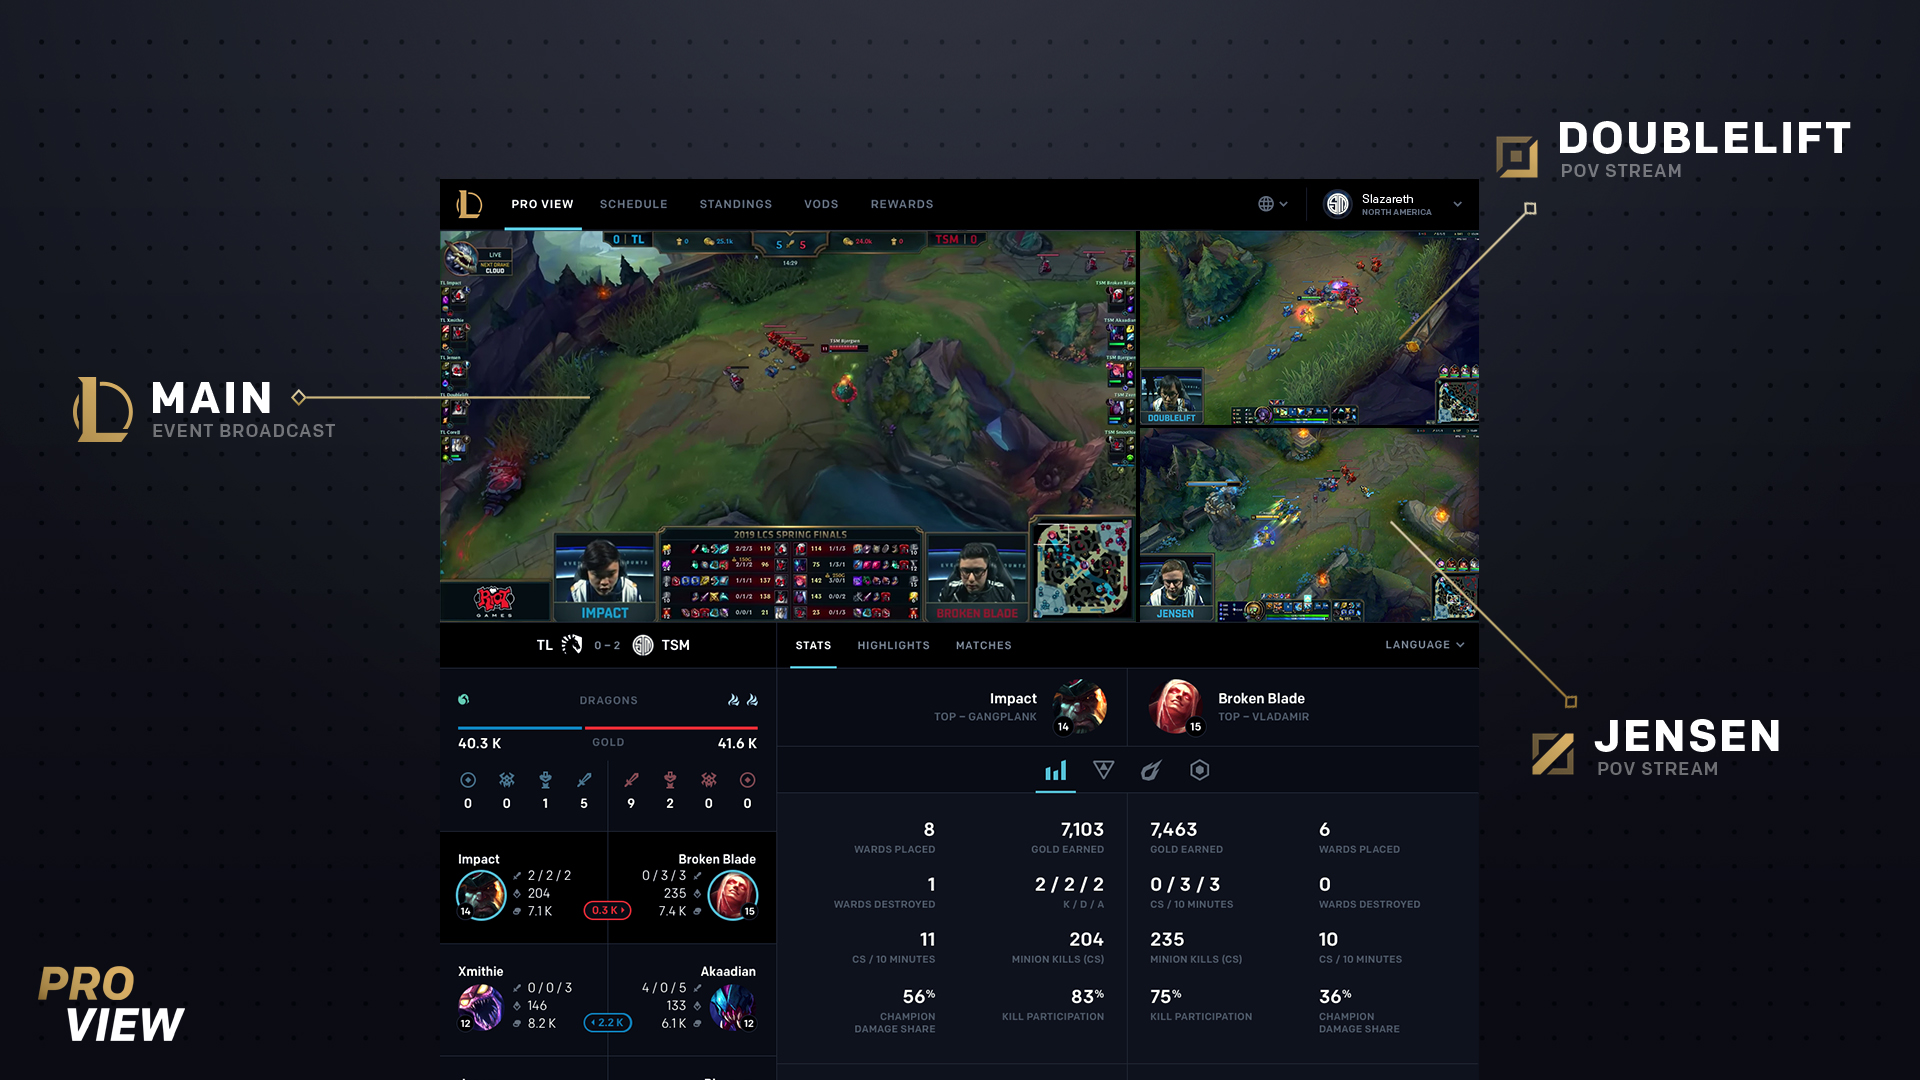 League of Legends' new 'Pro View' mode gives me all the stats and POV options I want for watching esports | PC Gamer